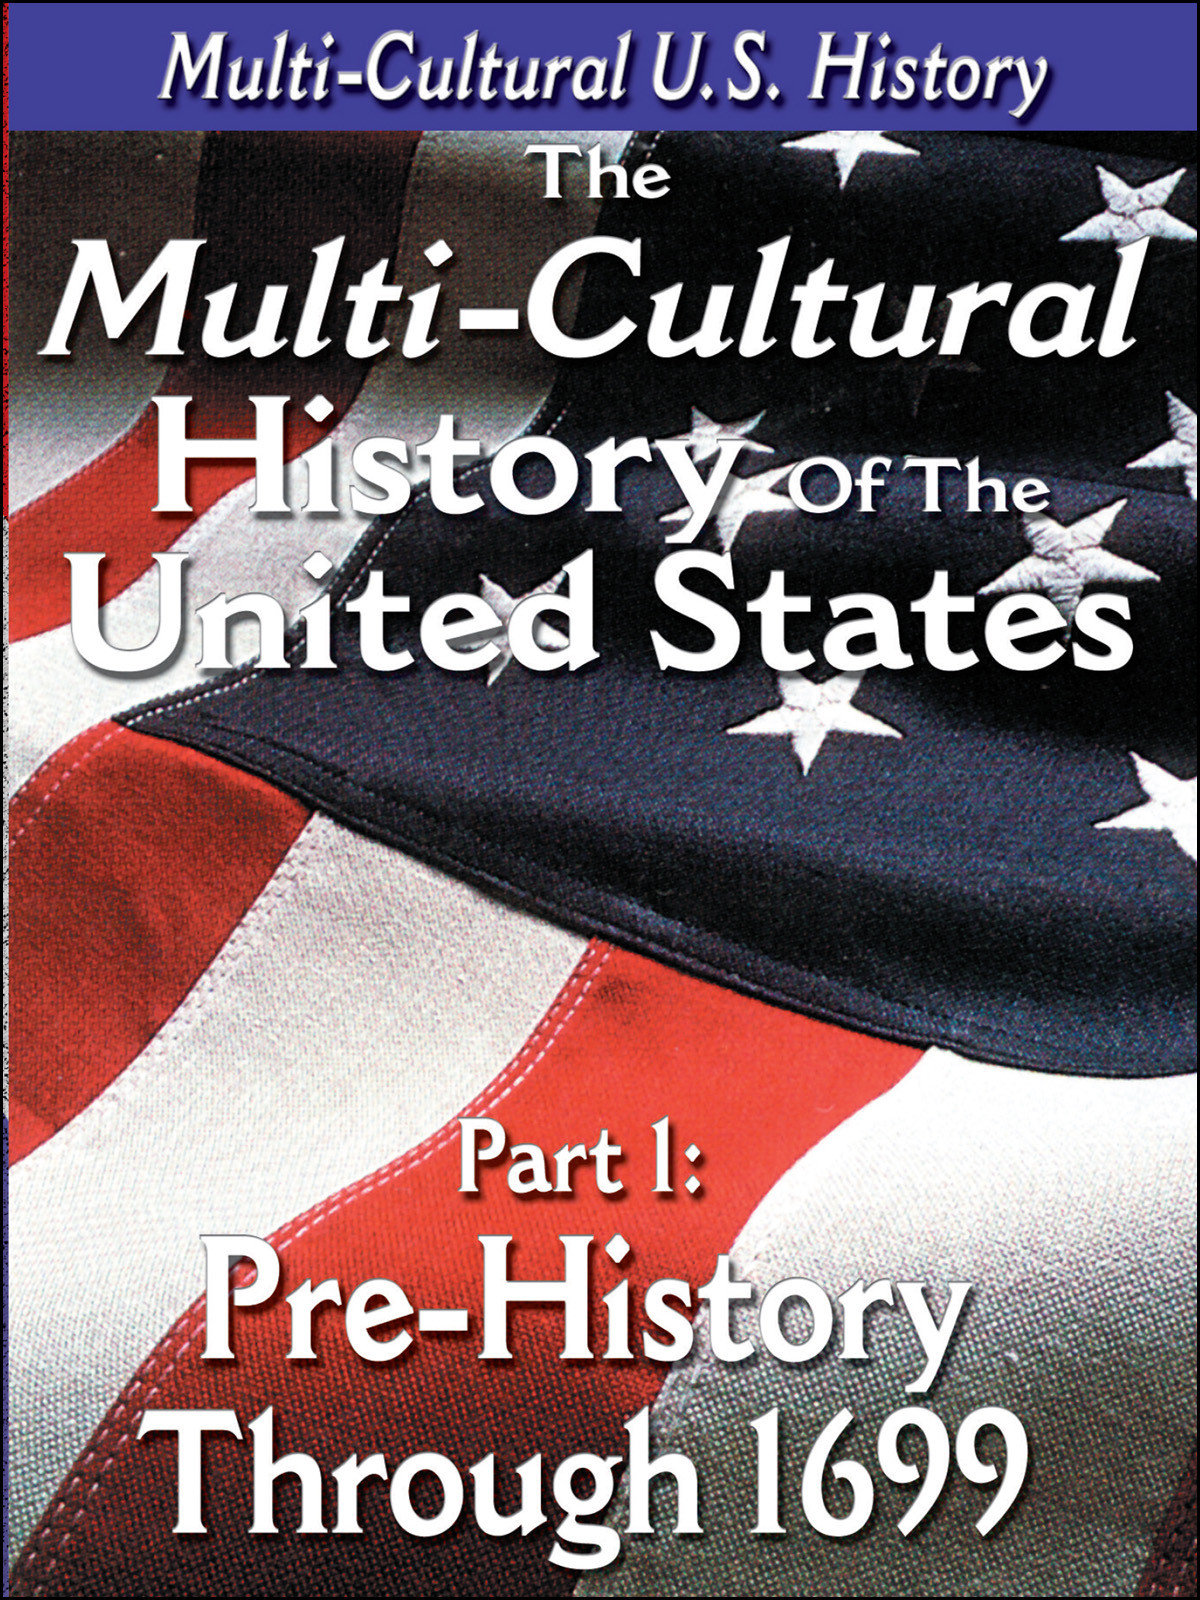 L917 - The History of the United States Pre-History through 1699